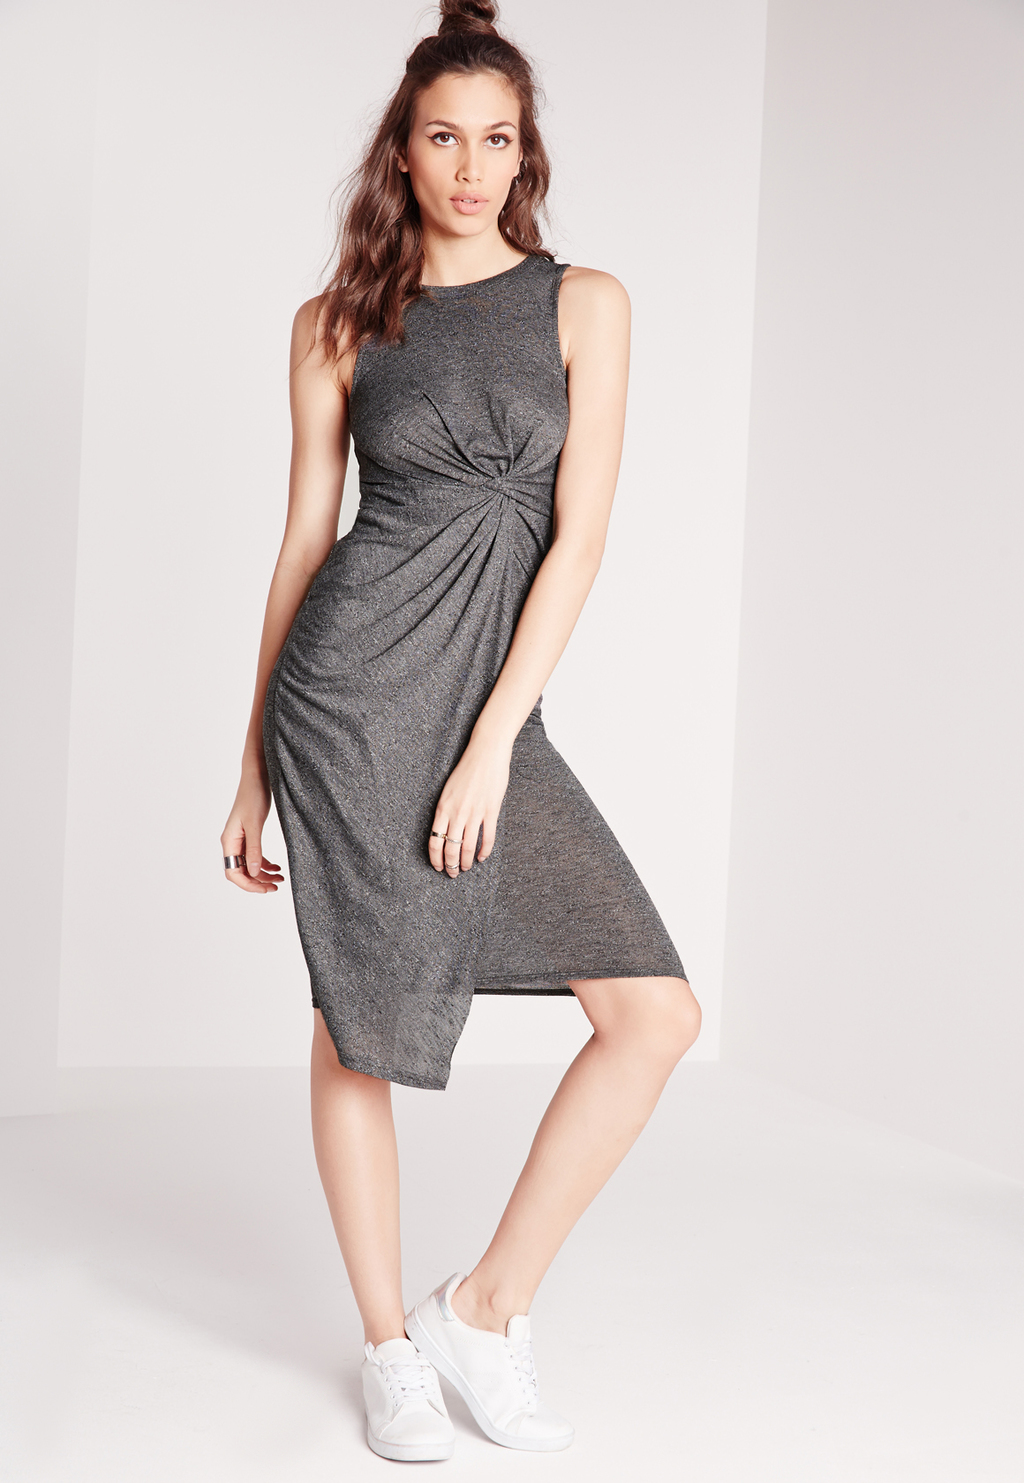 Knot Front Wrap Midi Dress Grey, Grey - style: shift; pattern: plain; sleeve style: sleeveless; waist detail: twist front waist detail/nipped in at waist on one side/soft pleats/draping/ruching/gathering waist detail; predominant colour: mid grey; occasions: casual; length: on the knee; fit: body skimming; fibres: viscose/rayon - stretch; neckline: crew; sleeve length: sleeveless; pattern type: fabric; texture group: jersey - stretchy/drapey; season: s/s 2016